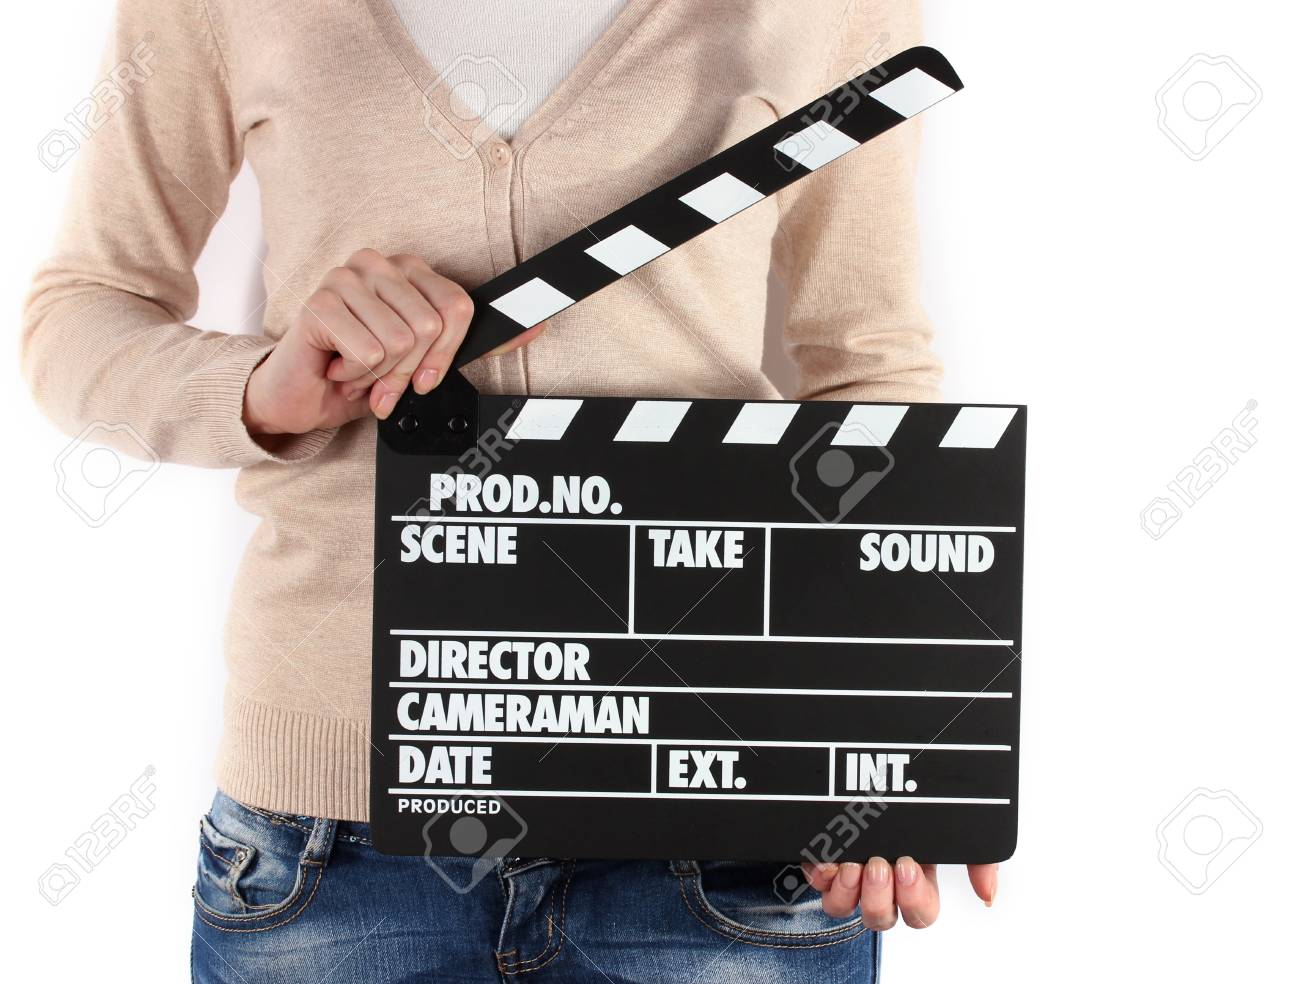 Movie production clapper board in hands isolated on white Stock Photo - 18695837